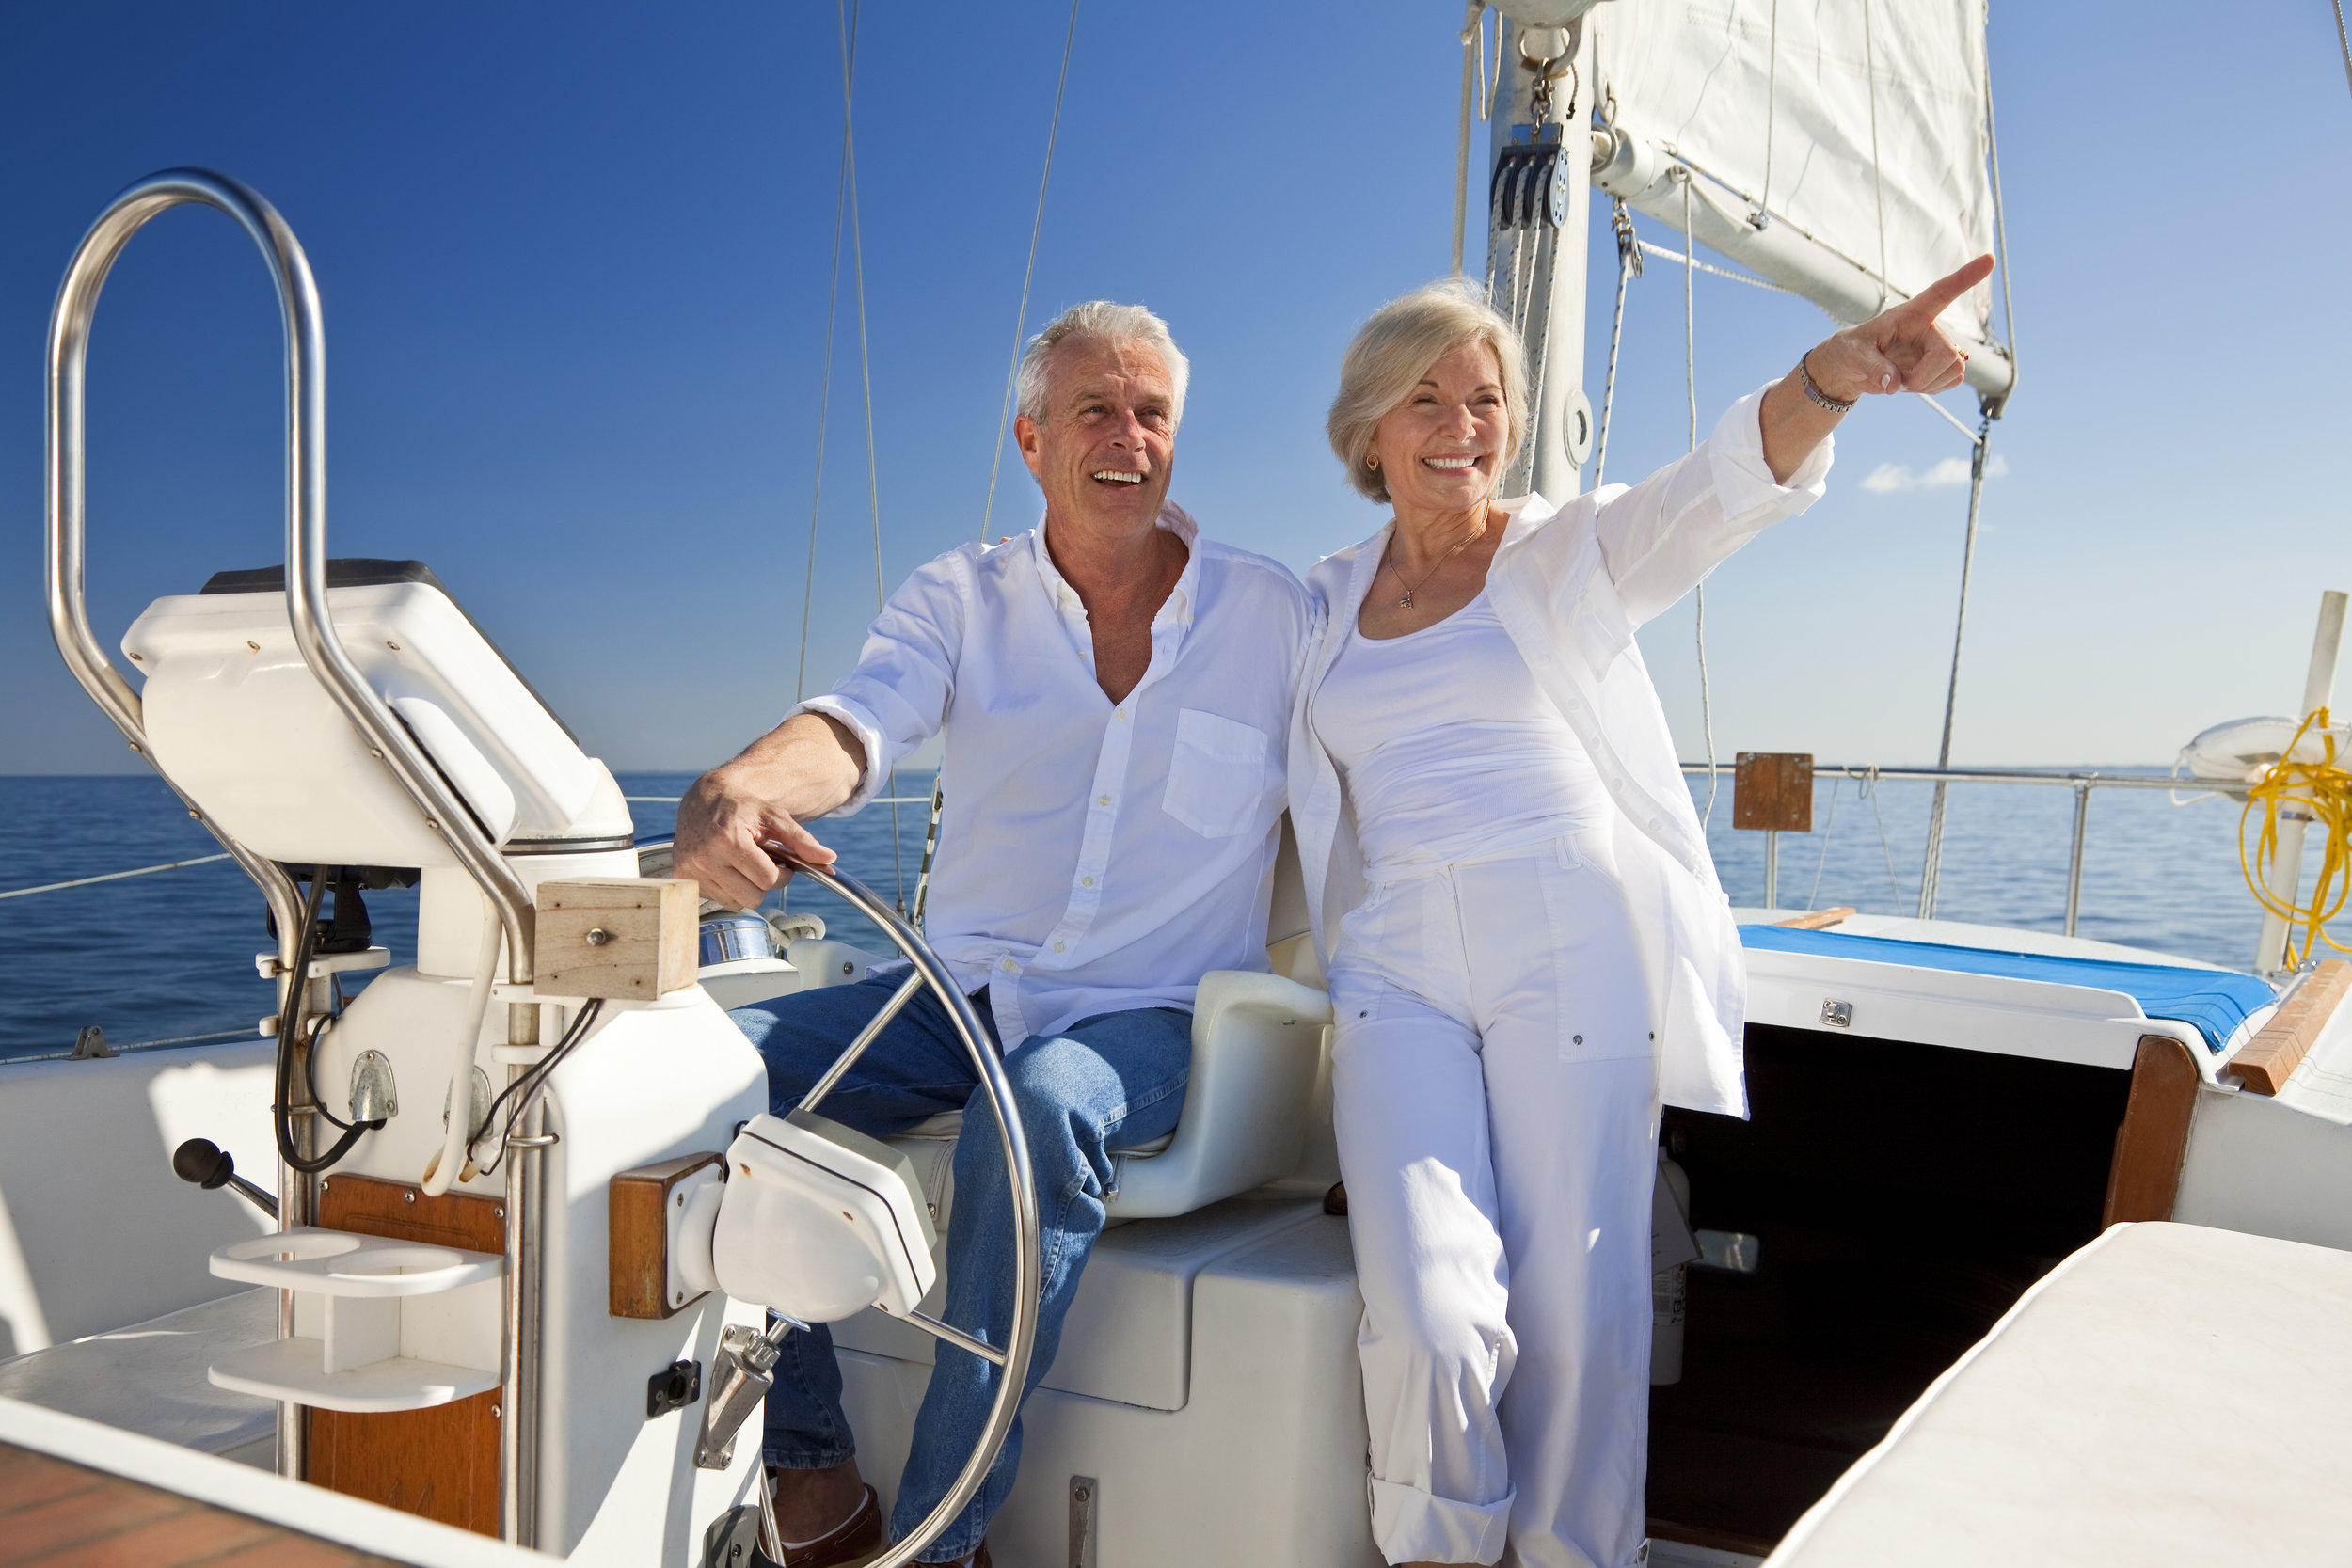 retirees on a boat.jpg